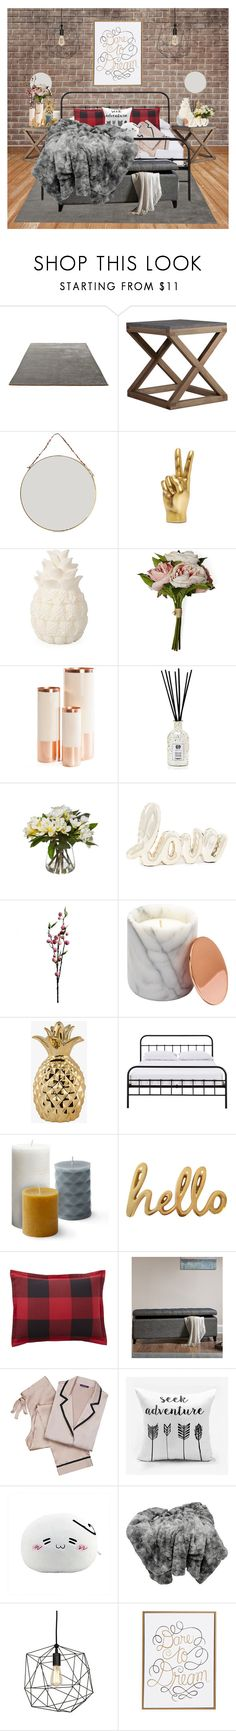 """""""Aesthetic Bedroom"""" by carrie-lynn ❤ liked on Polyvore featuring interior, interiors, interior design, home, home decor, interior decorating, &Tradition, Peter Hall & Son, Zara Home and House & Home"""